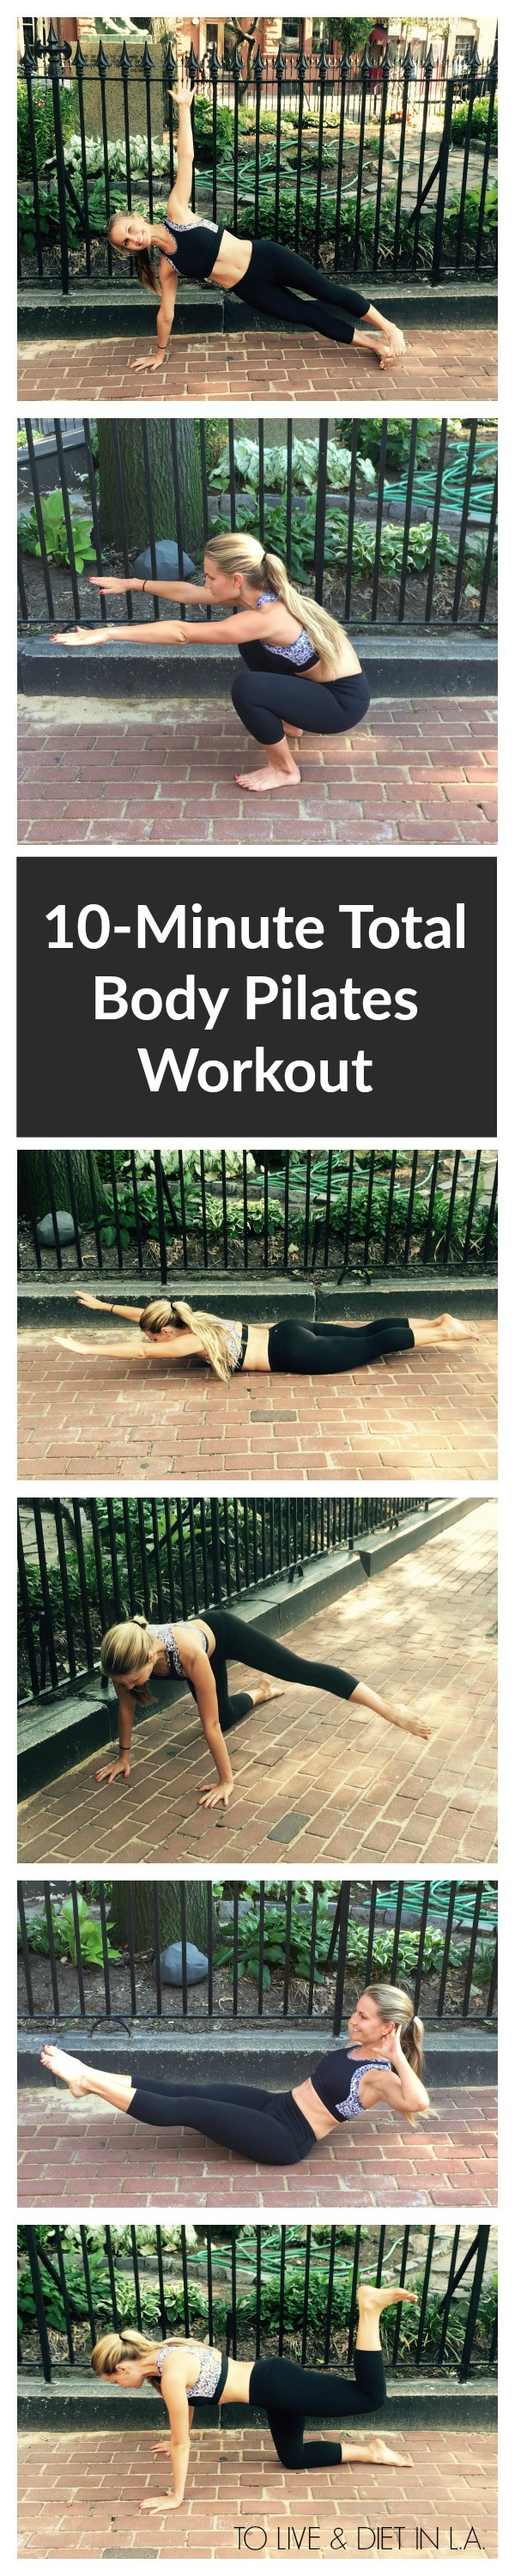 10 Minute Total Body Pilates Workout